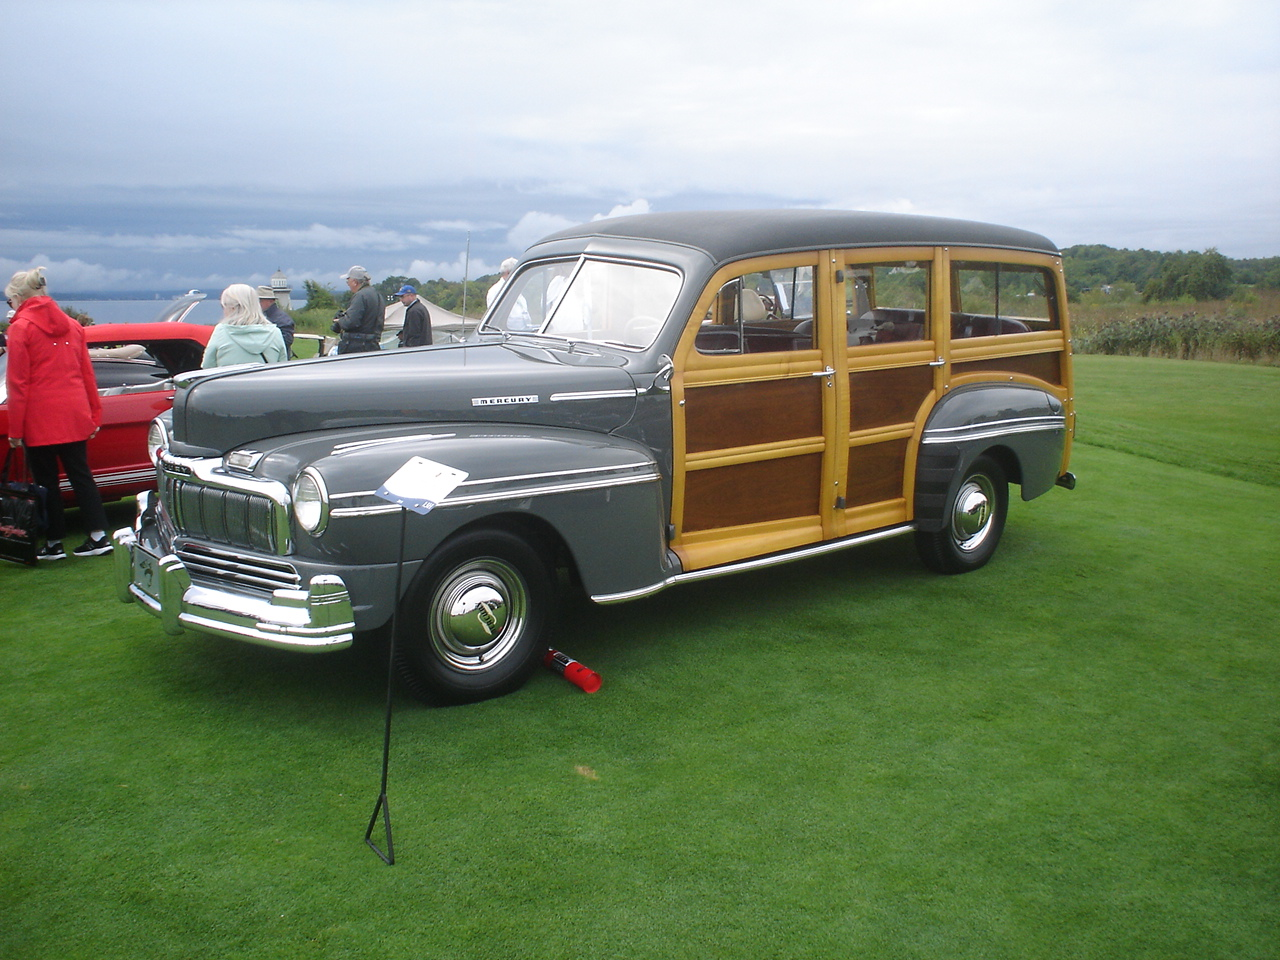 1947 Mercury Model 79M Woody Station-Wagon -1.JPG